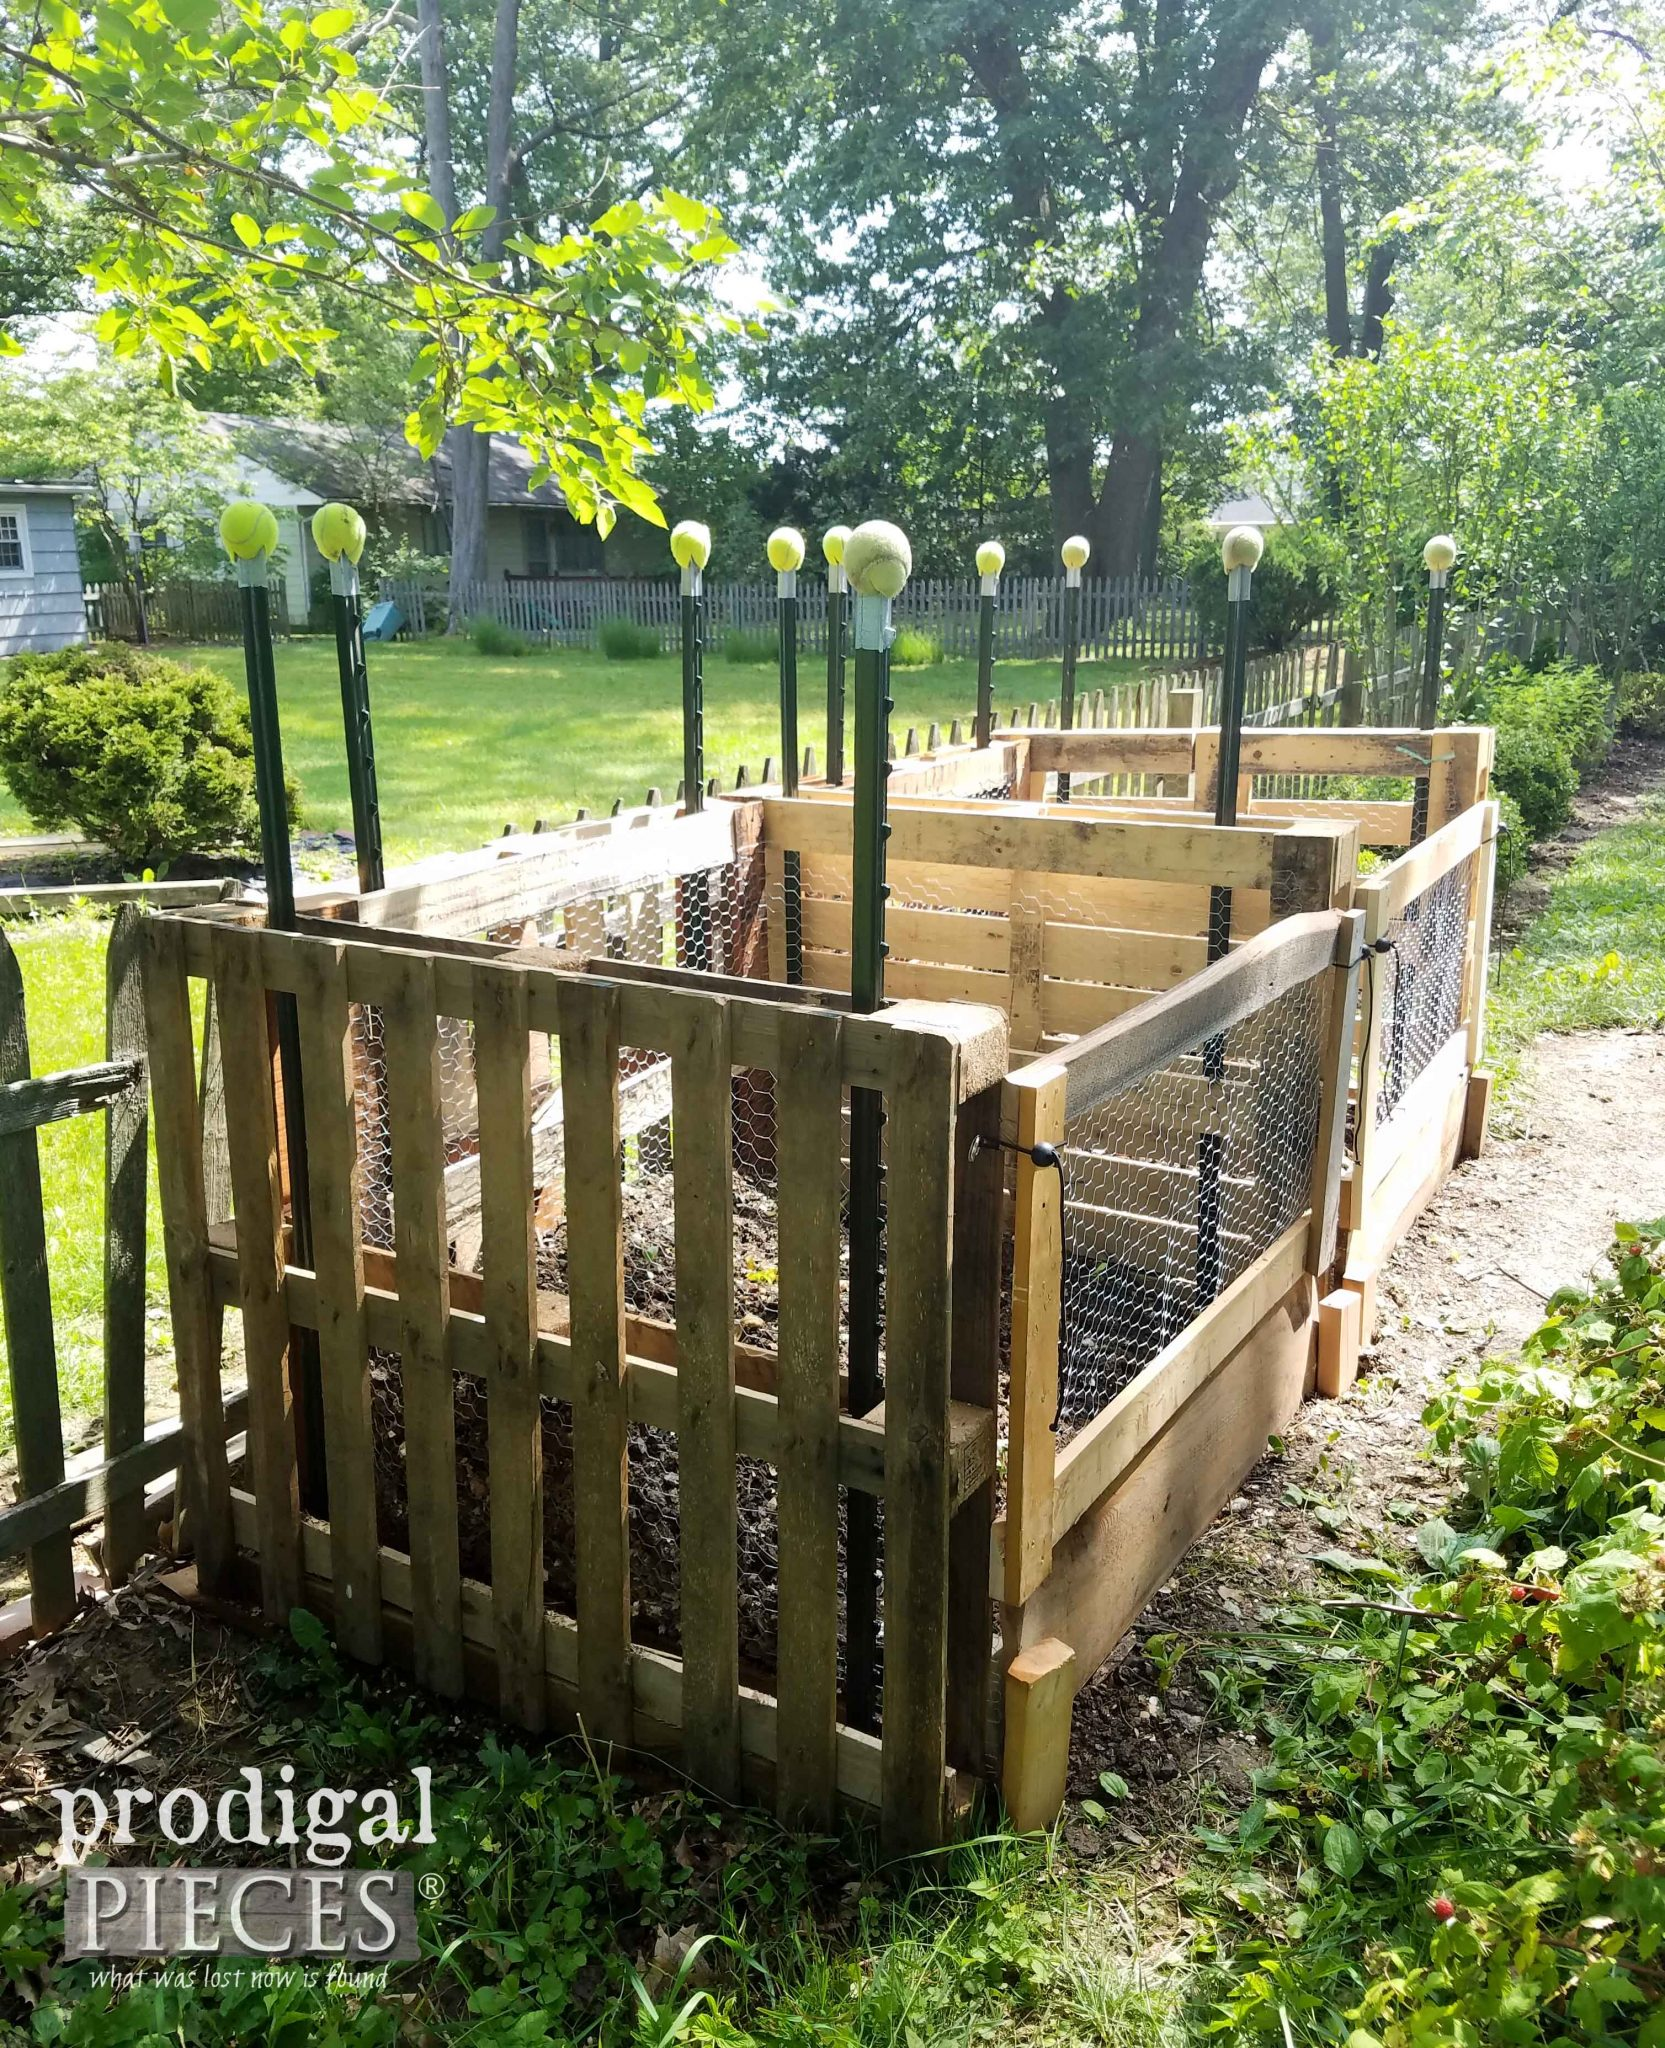 Easy DIY Pallet Compost Bin built by Prodigal Pieces | prodigalpieces.com